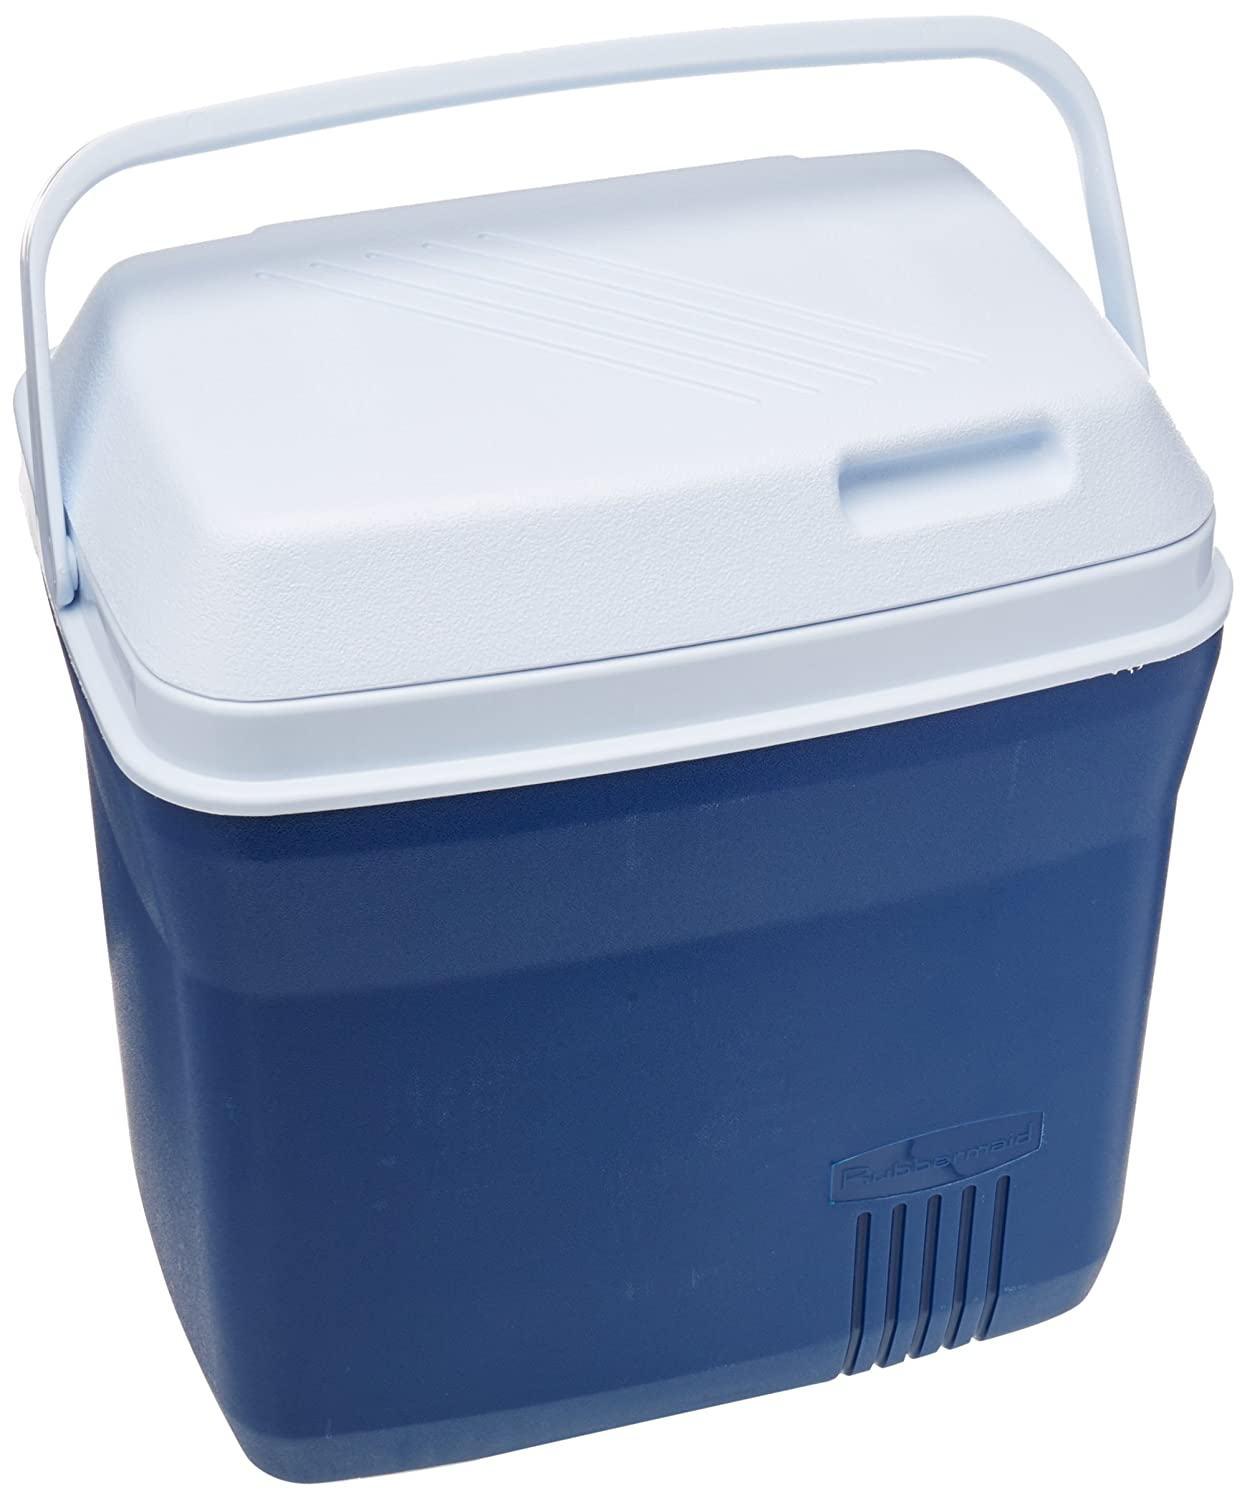 Rubbermaid Cooler, 20 Quart, Blue FG2A2704MODBL